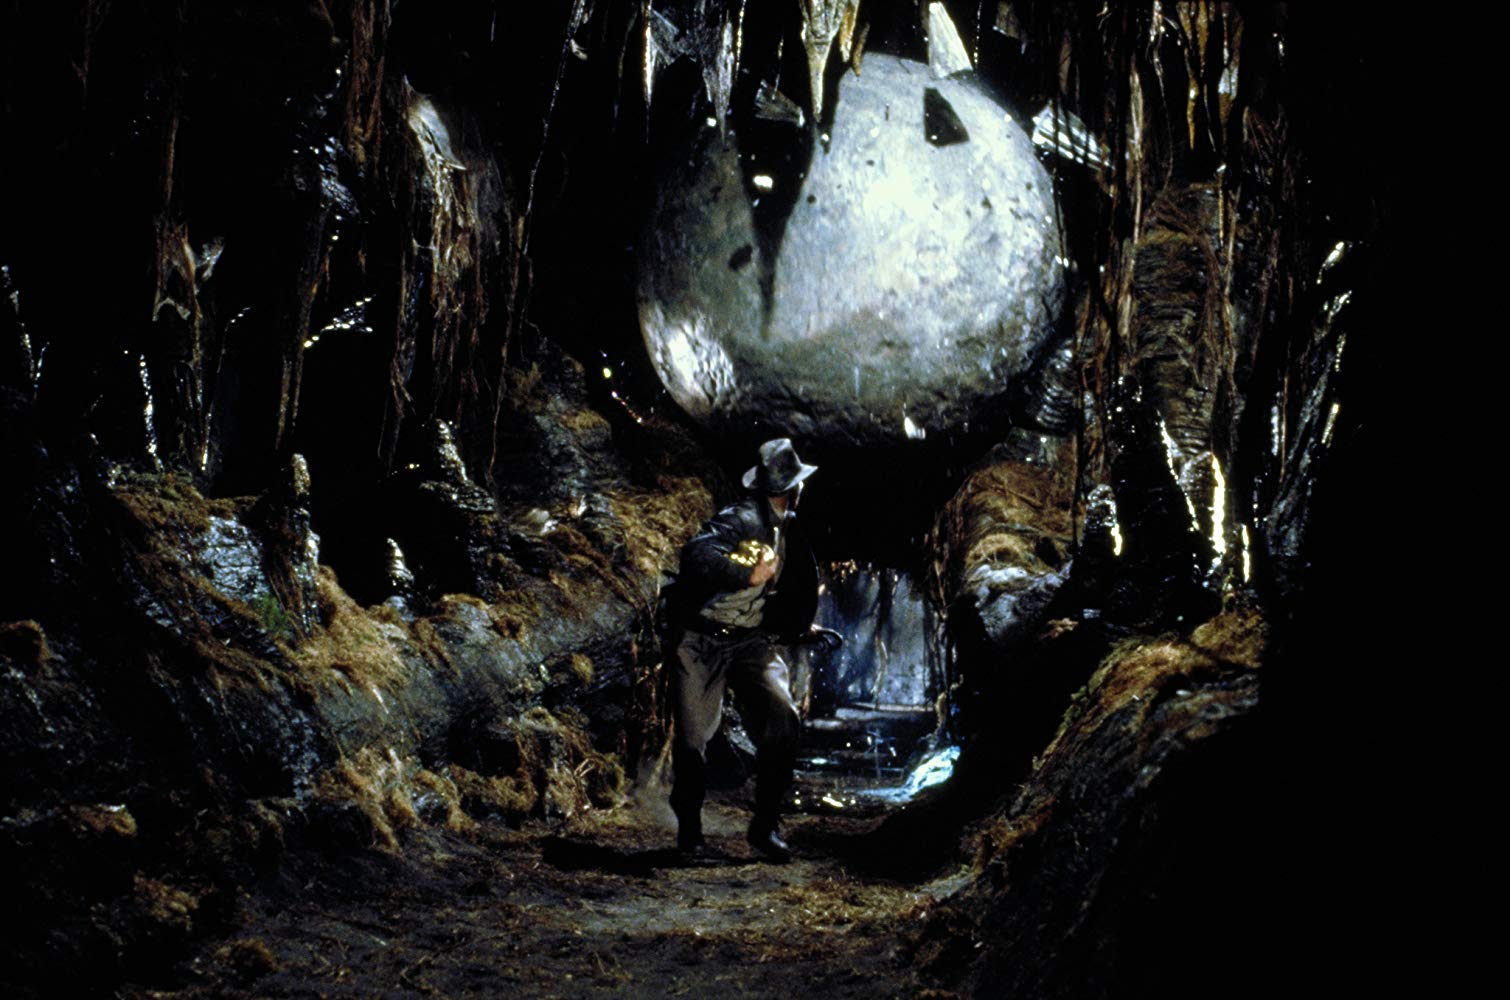 Harrison Ford on the run from boulder in Raiders of the Lost Ark (1981